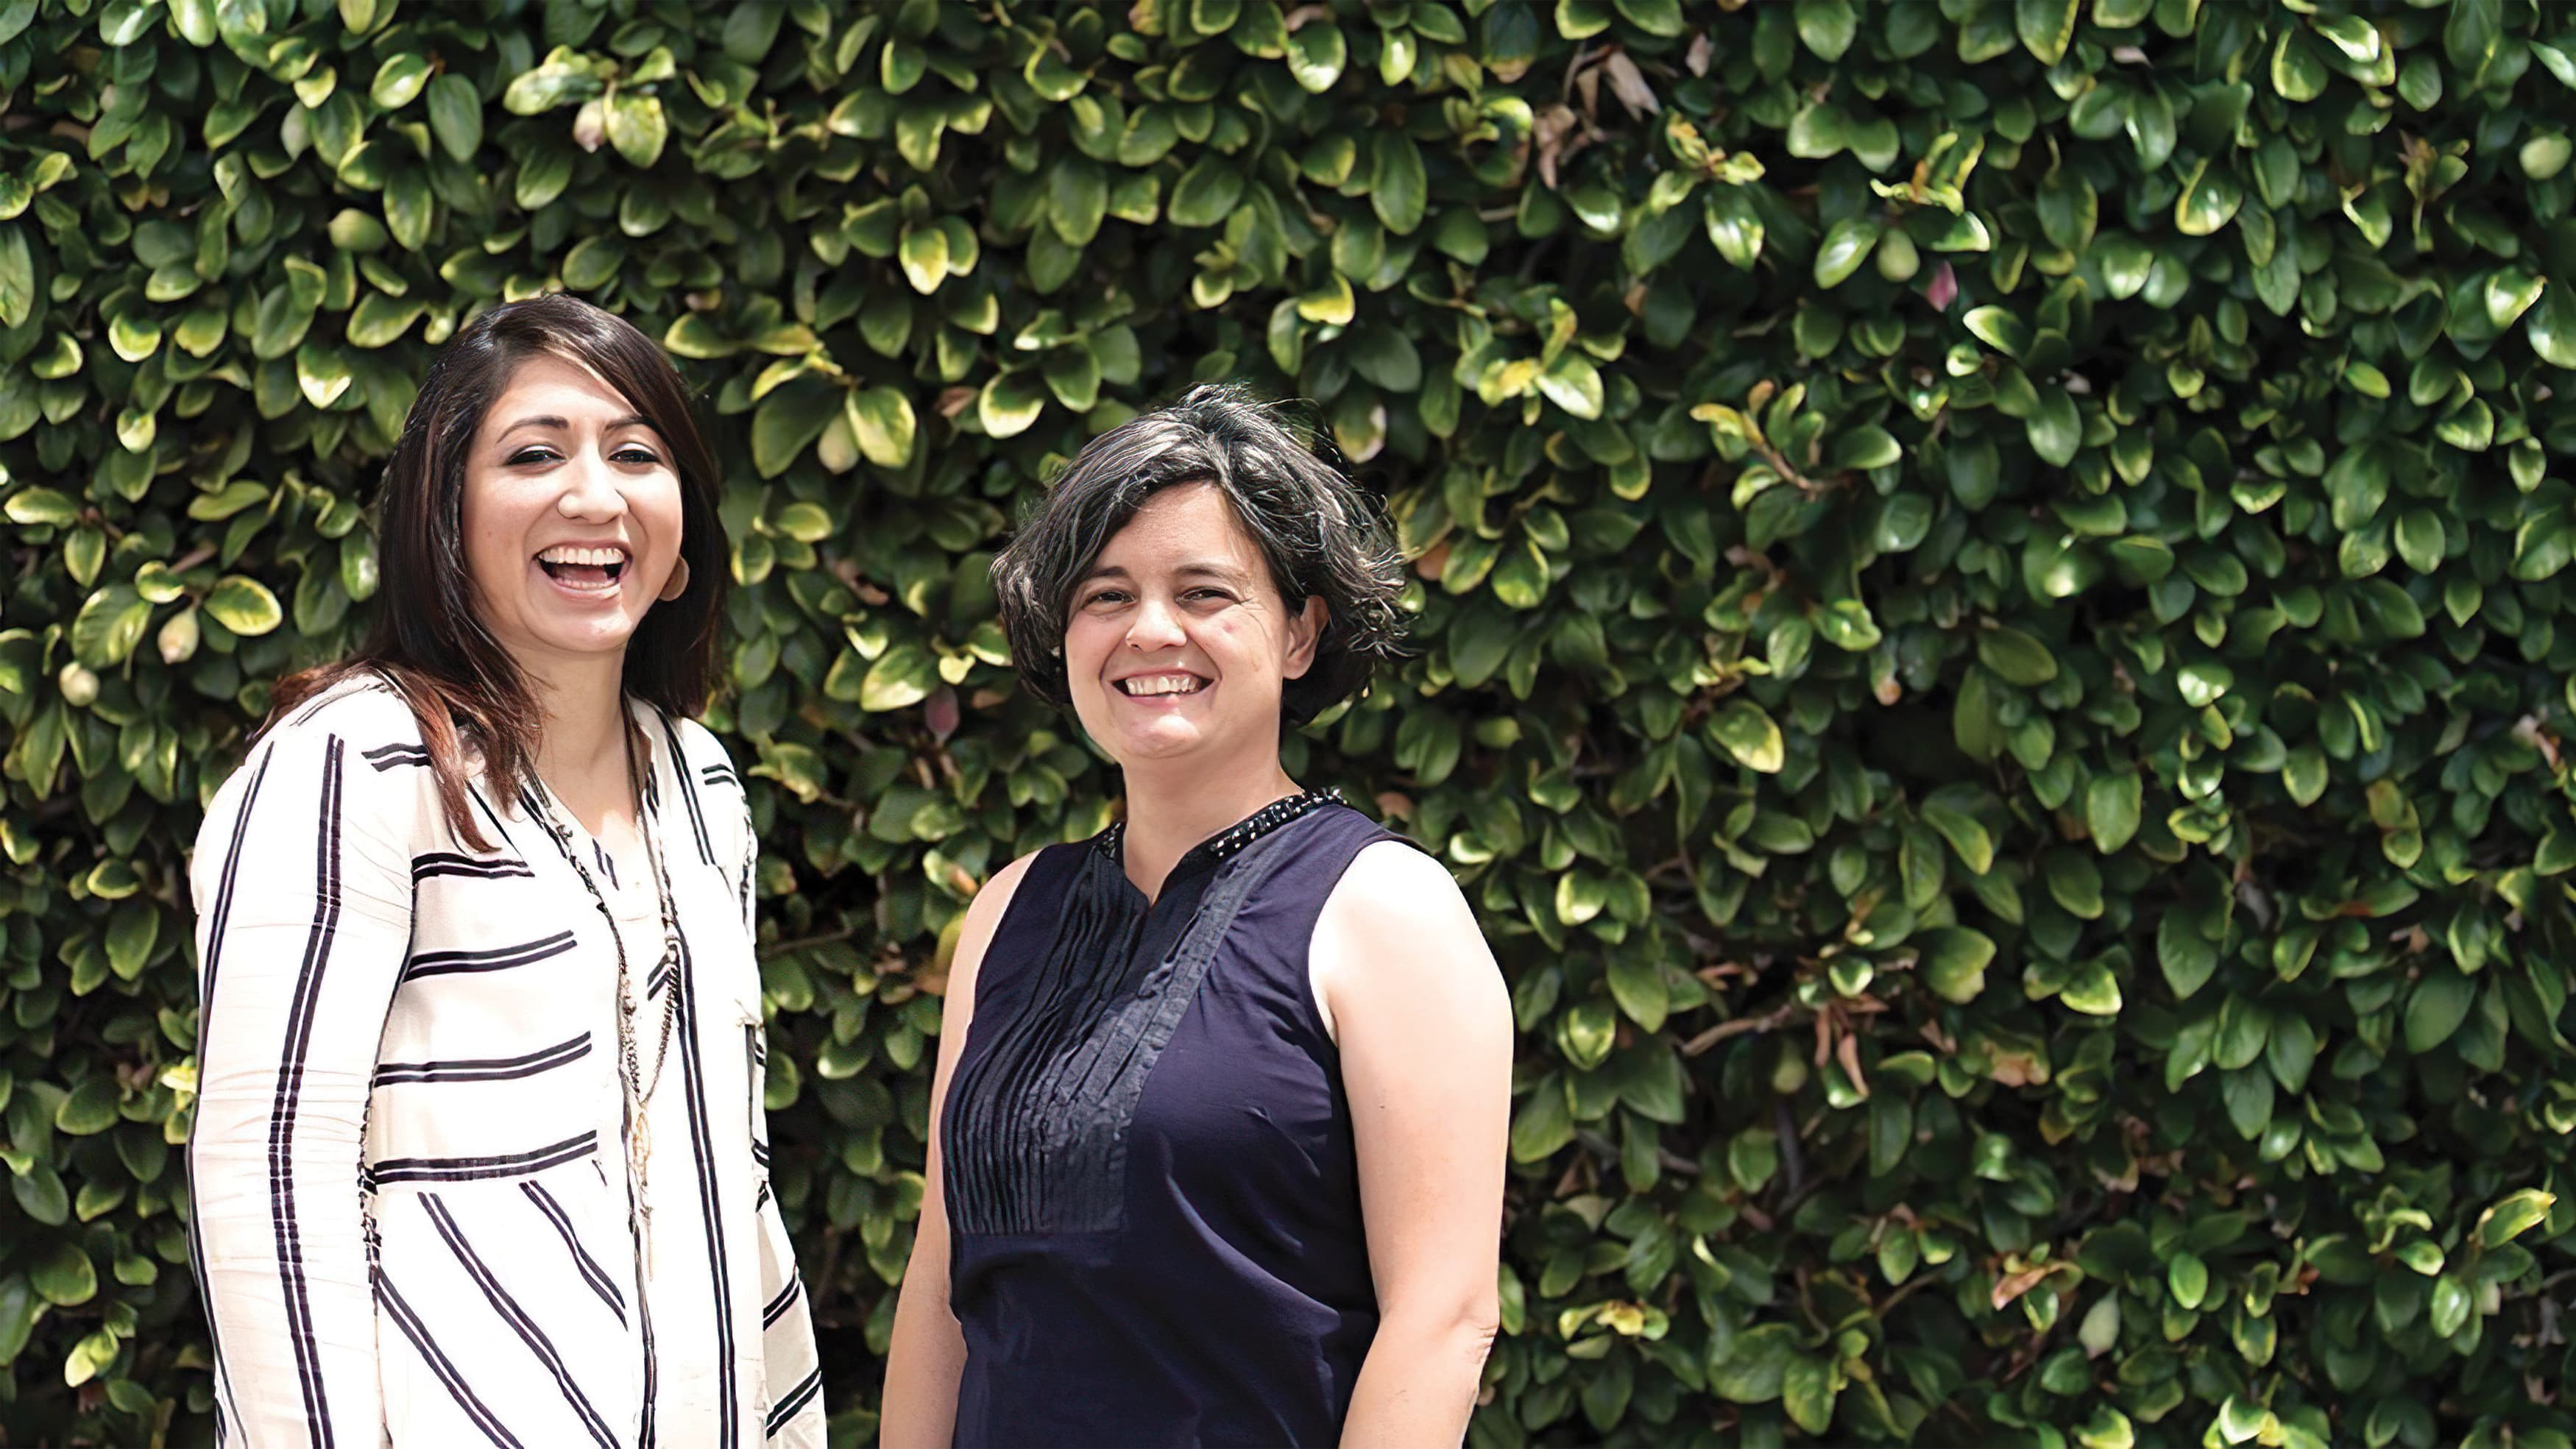 Christy Montgomery and Yolanda Sepulveda were both promoted within the ranks of RSM Design